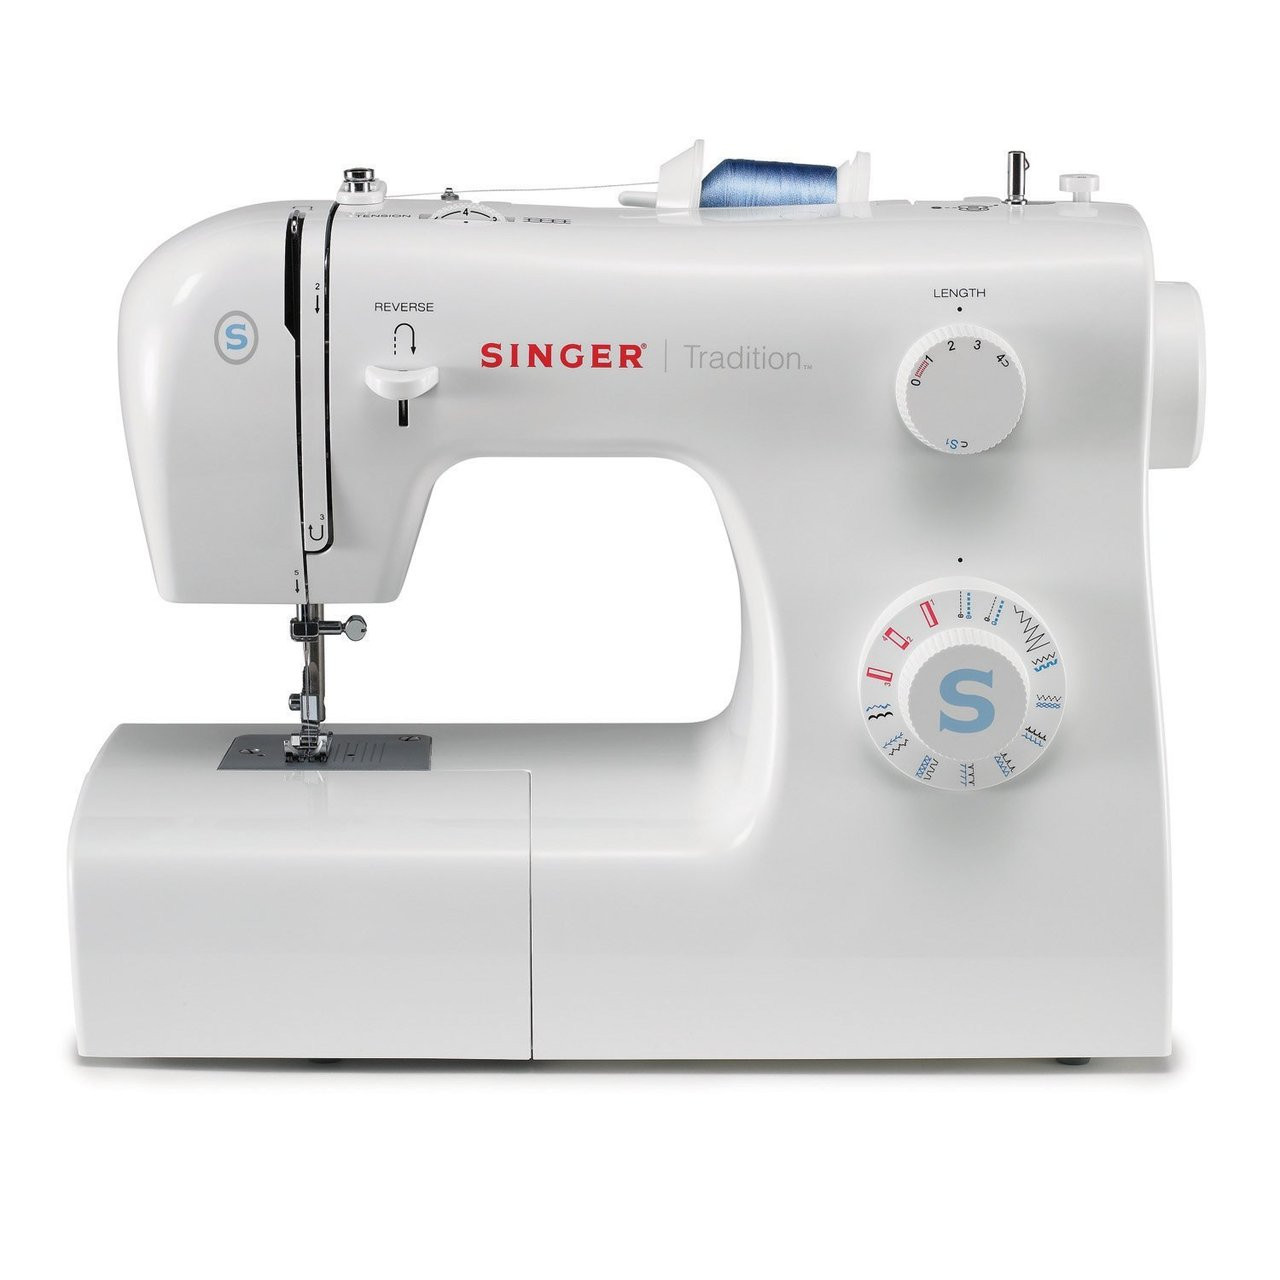 and 4Step Auto Buttonhole Everyday Sewing Machine with 10 Stitches ...